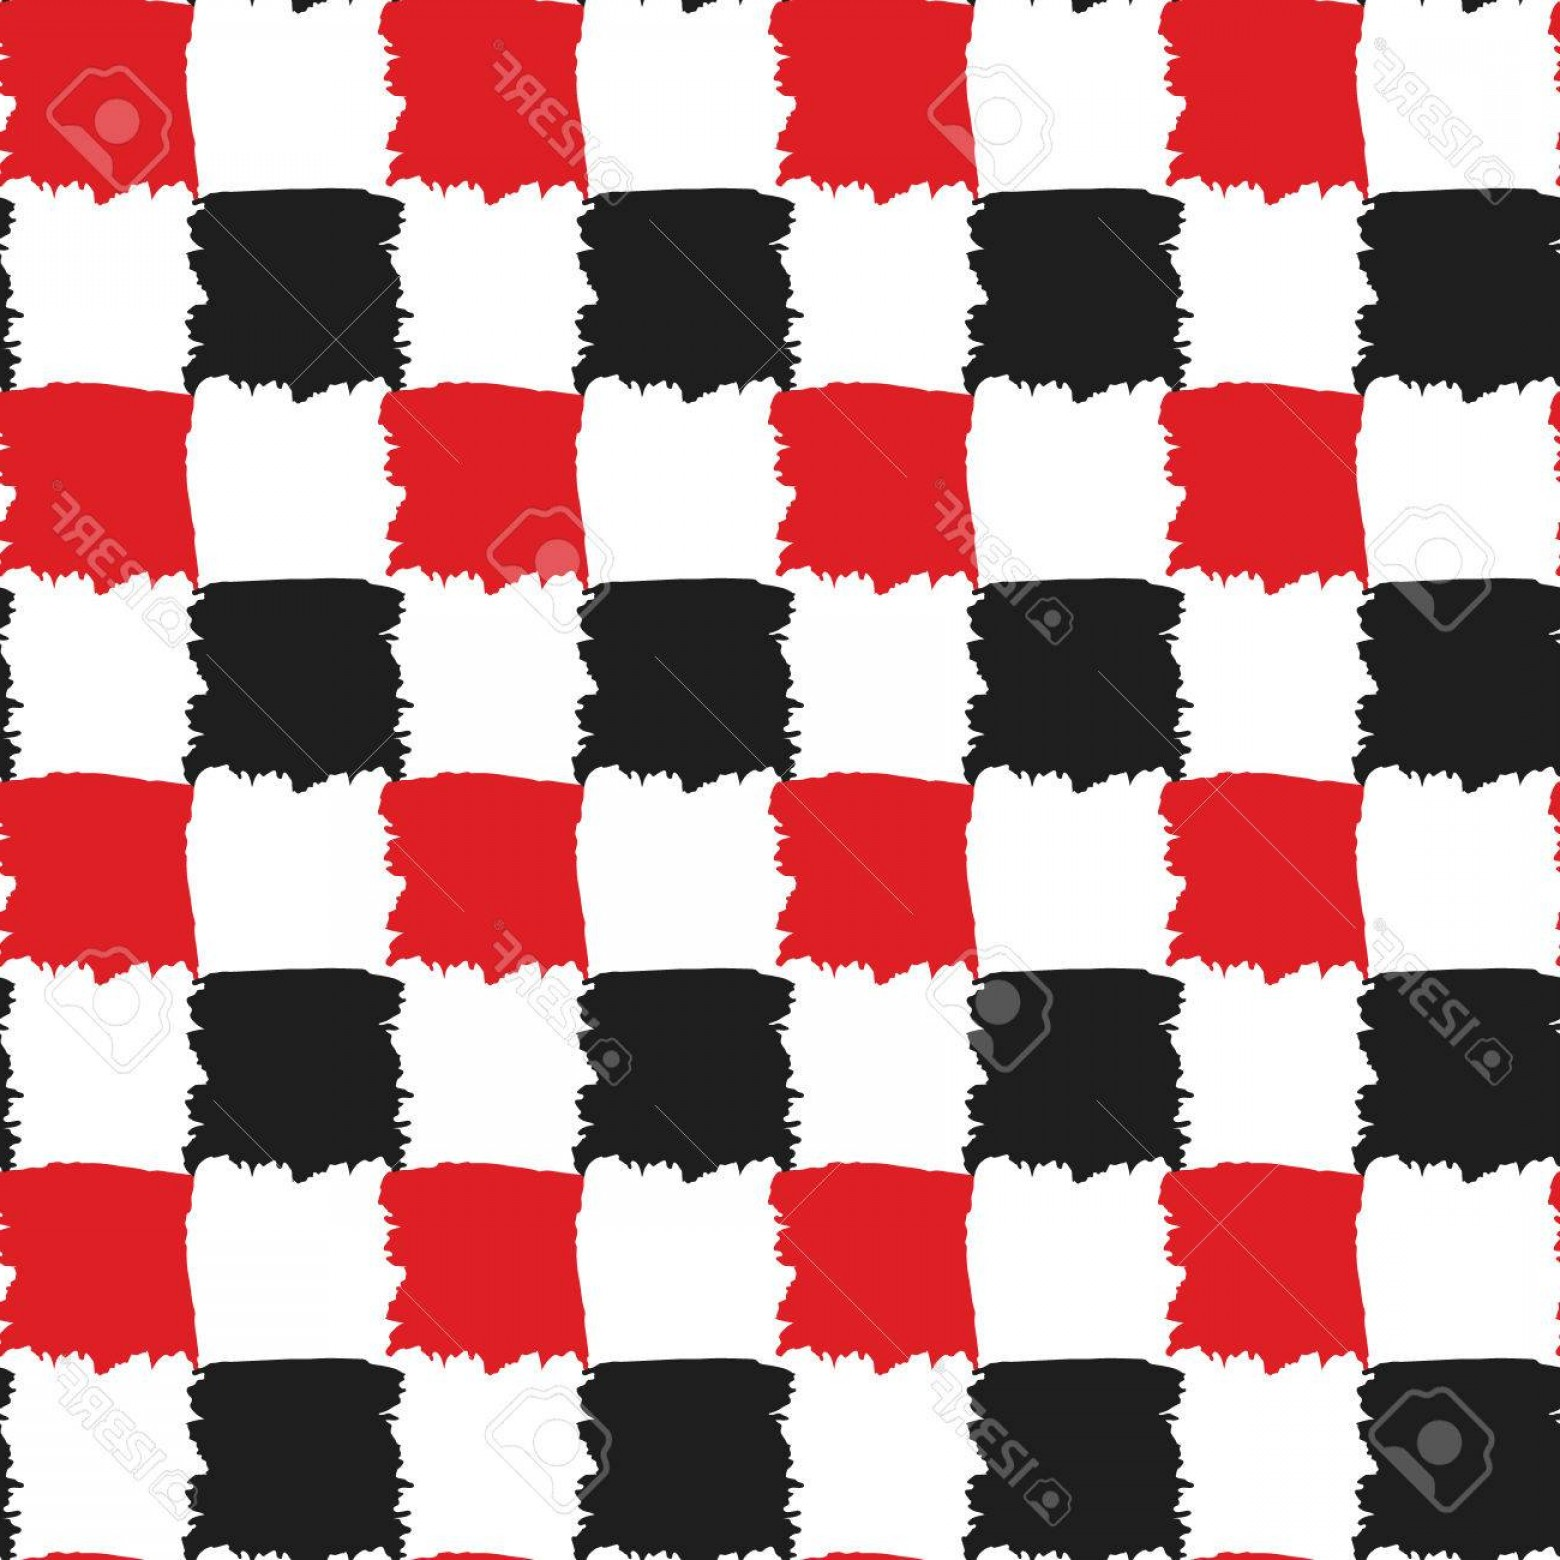 Checker Vector Template: Photostock Vector Check Black Red And White Seamless Pattern Checkers Board Painted Vector Design Brush Stroke Texture